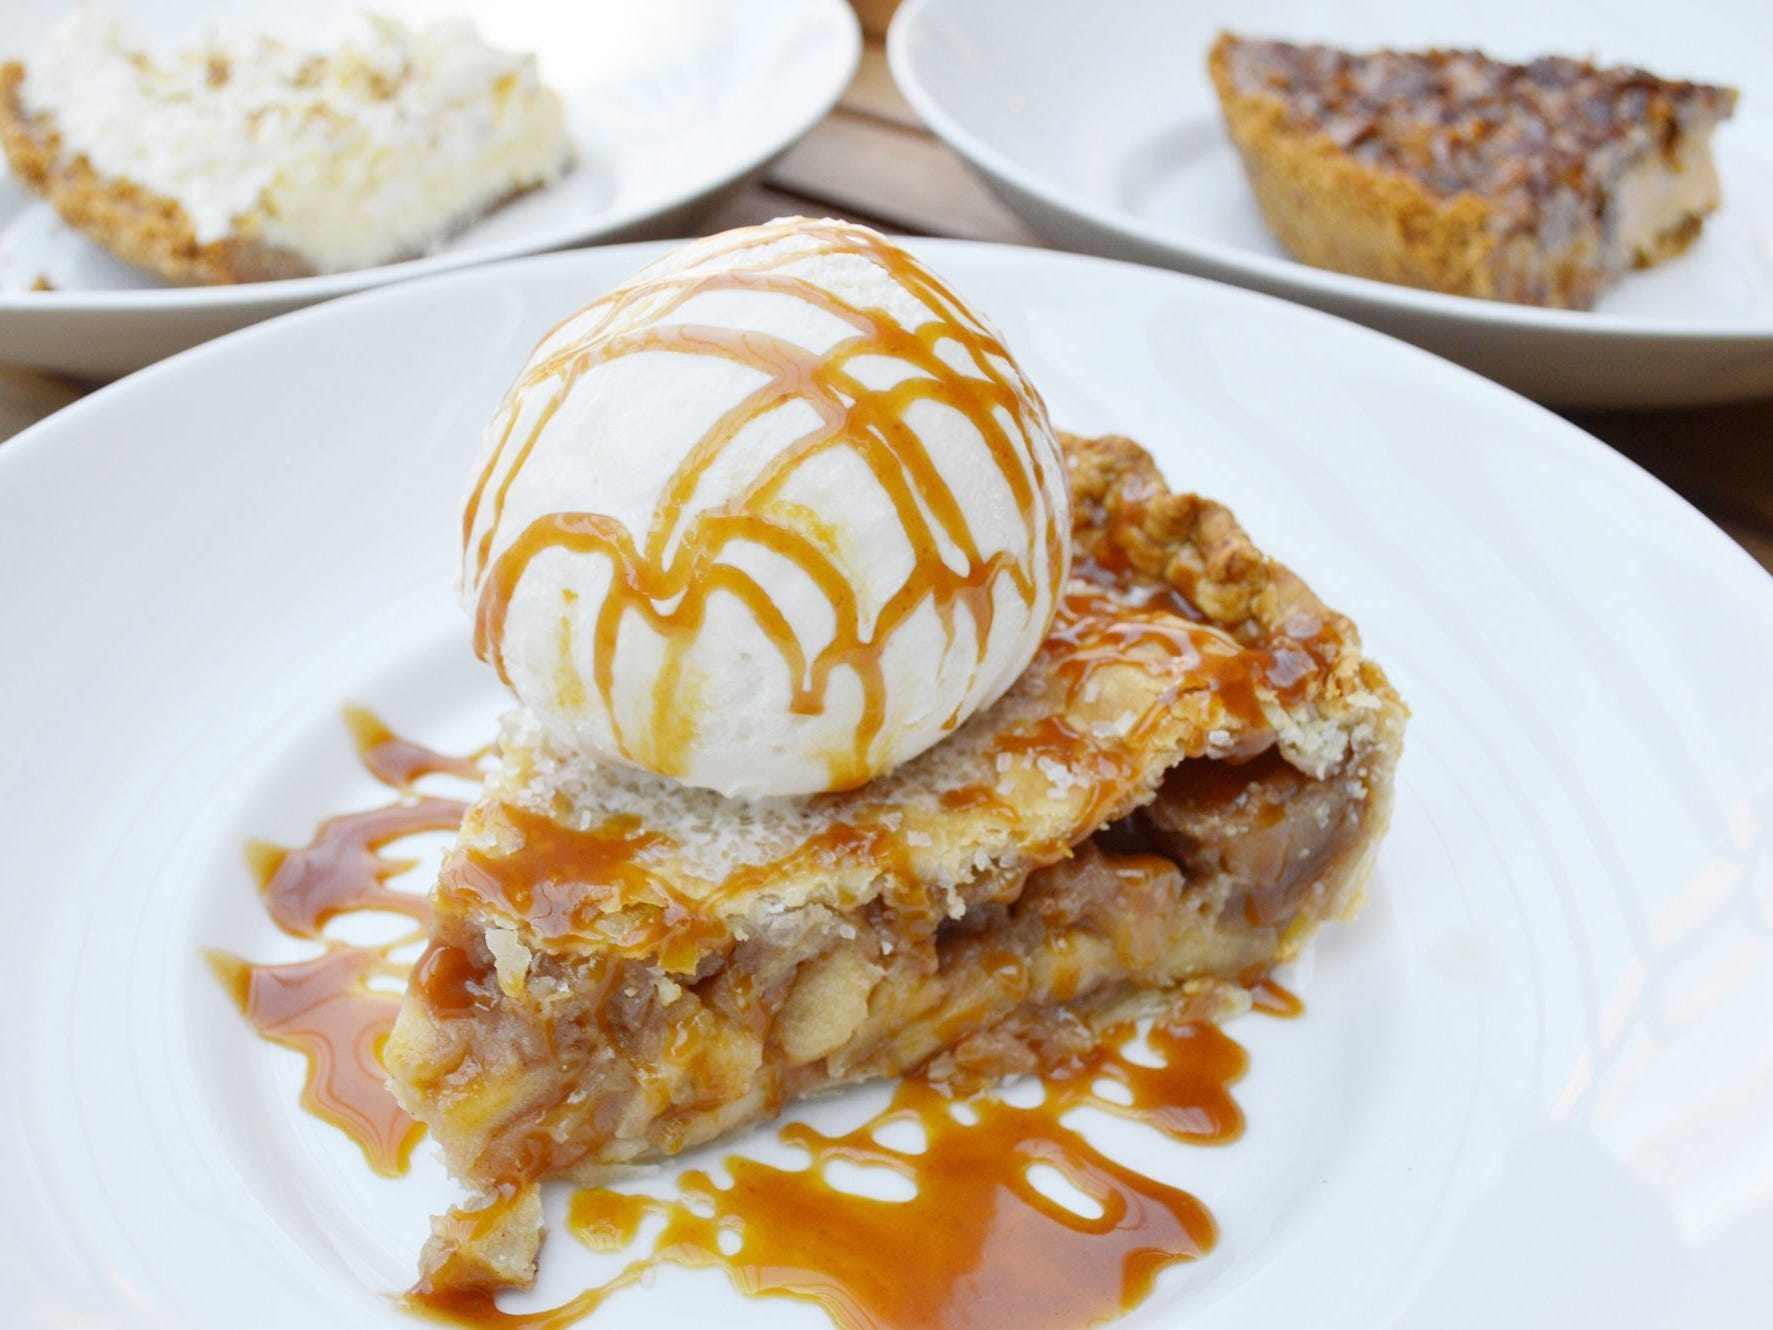 SWEET PROVISIONS  On Pie Day, March 14, enjoy $3.14 slices all day long. Choose from a lineup of coconut cream, butterscotch pecan, pumpkin, and key lime.   DETAILS: 8120 N. Hayden Road, Scottsdale. 480-275-2676, sweetprovisionsaz.com.